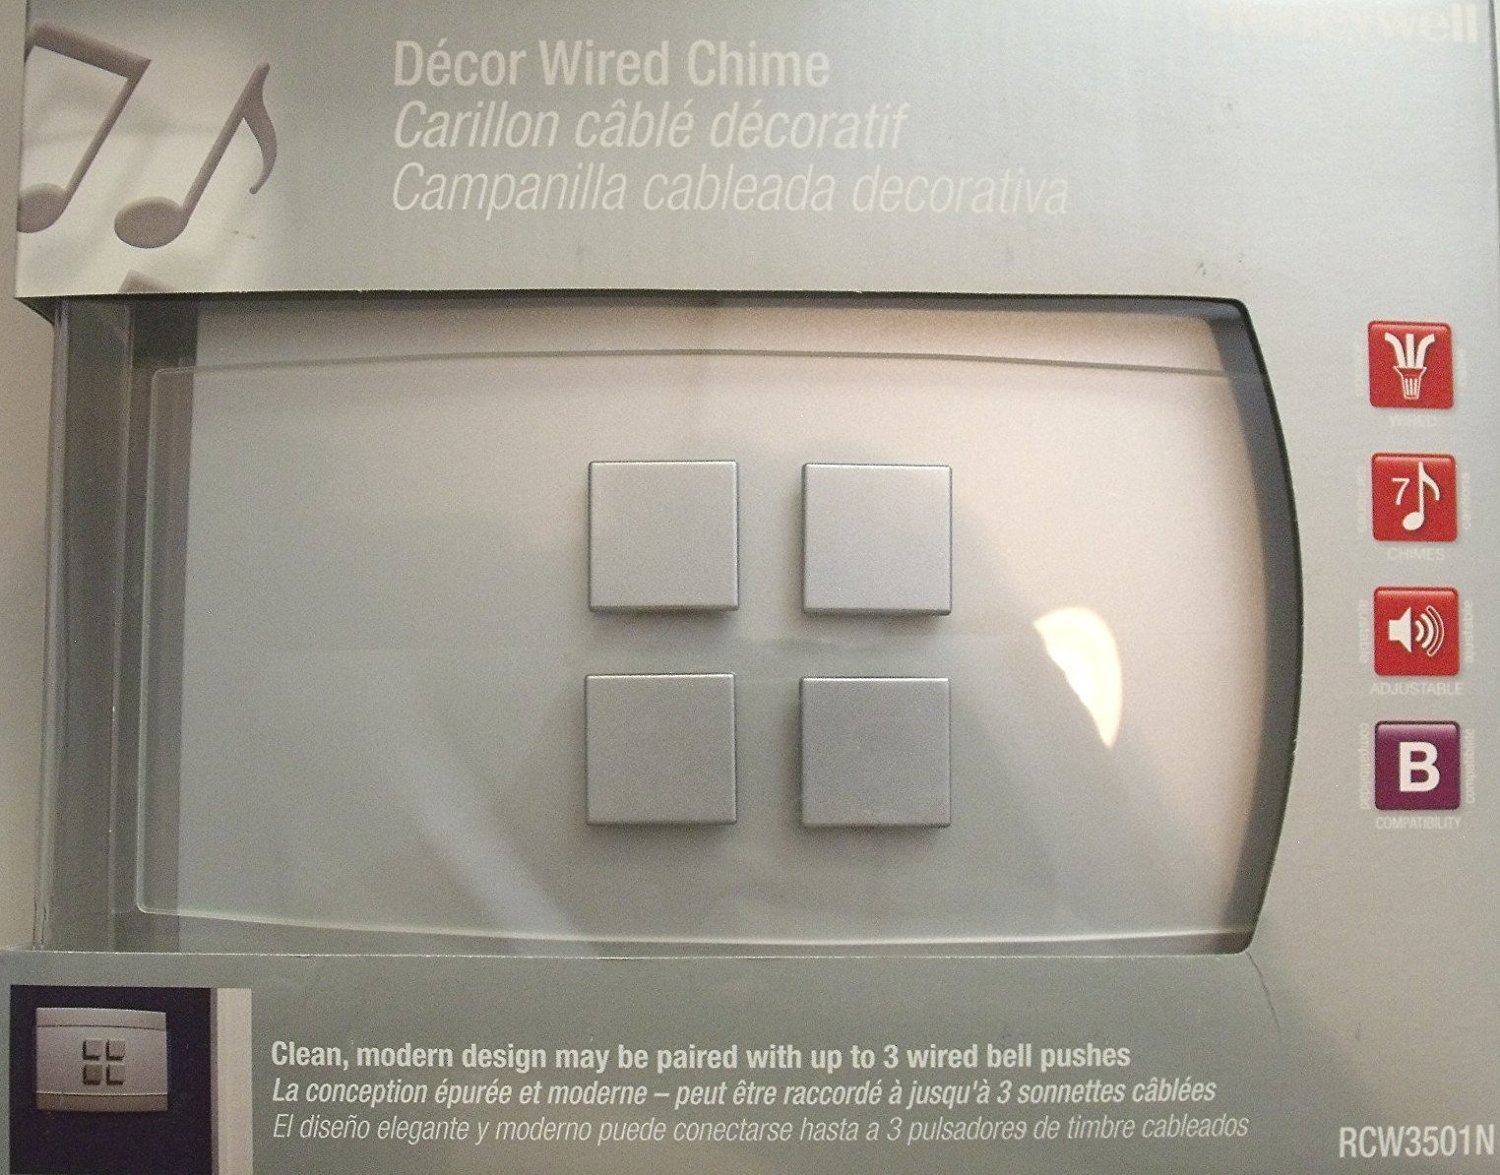 Honeywell Rcw3501n Decor Wired Door Chime No Push Button Included Doorbell Wiring Diagram Two Chimes